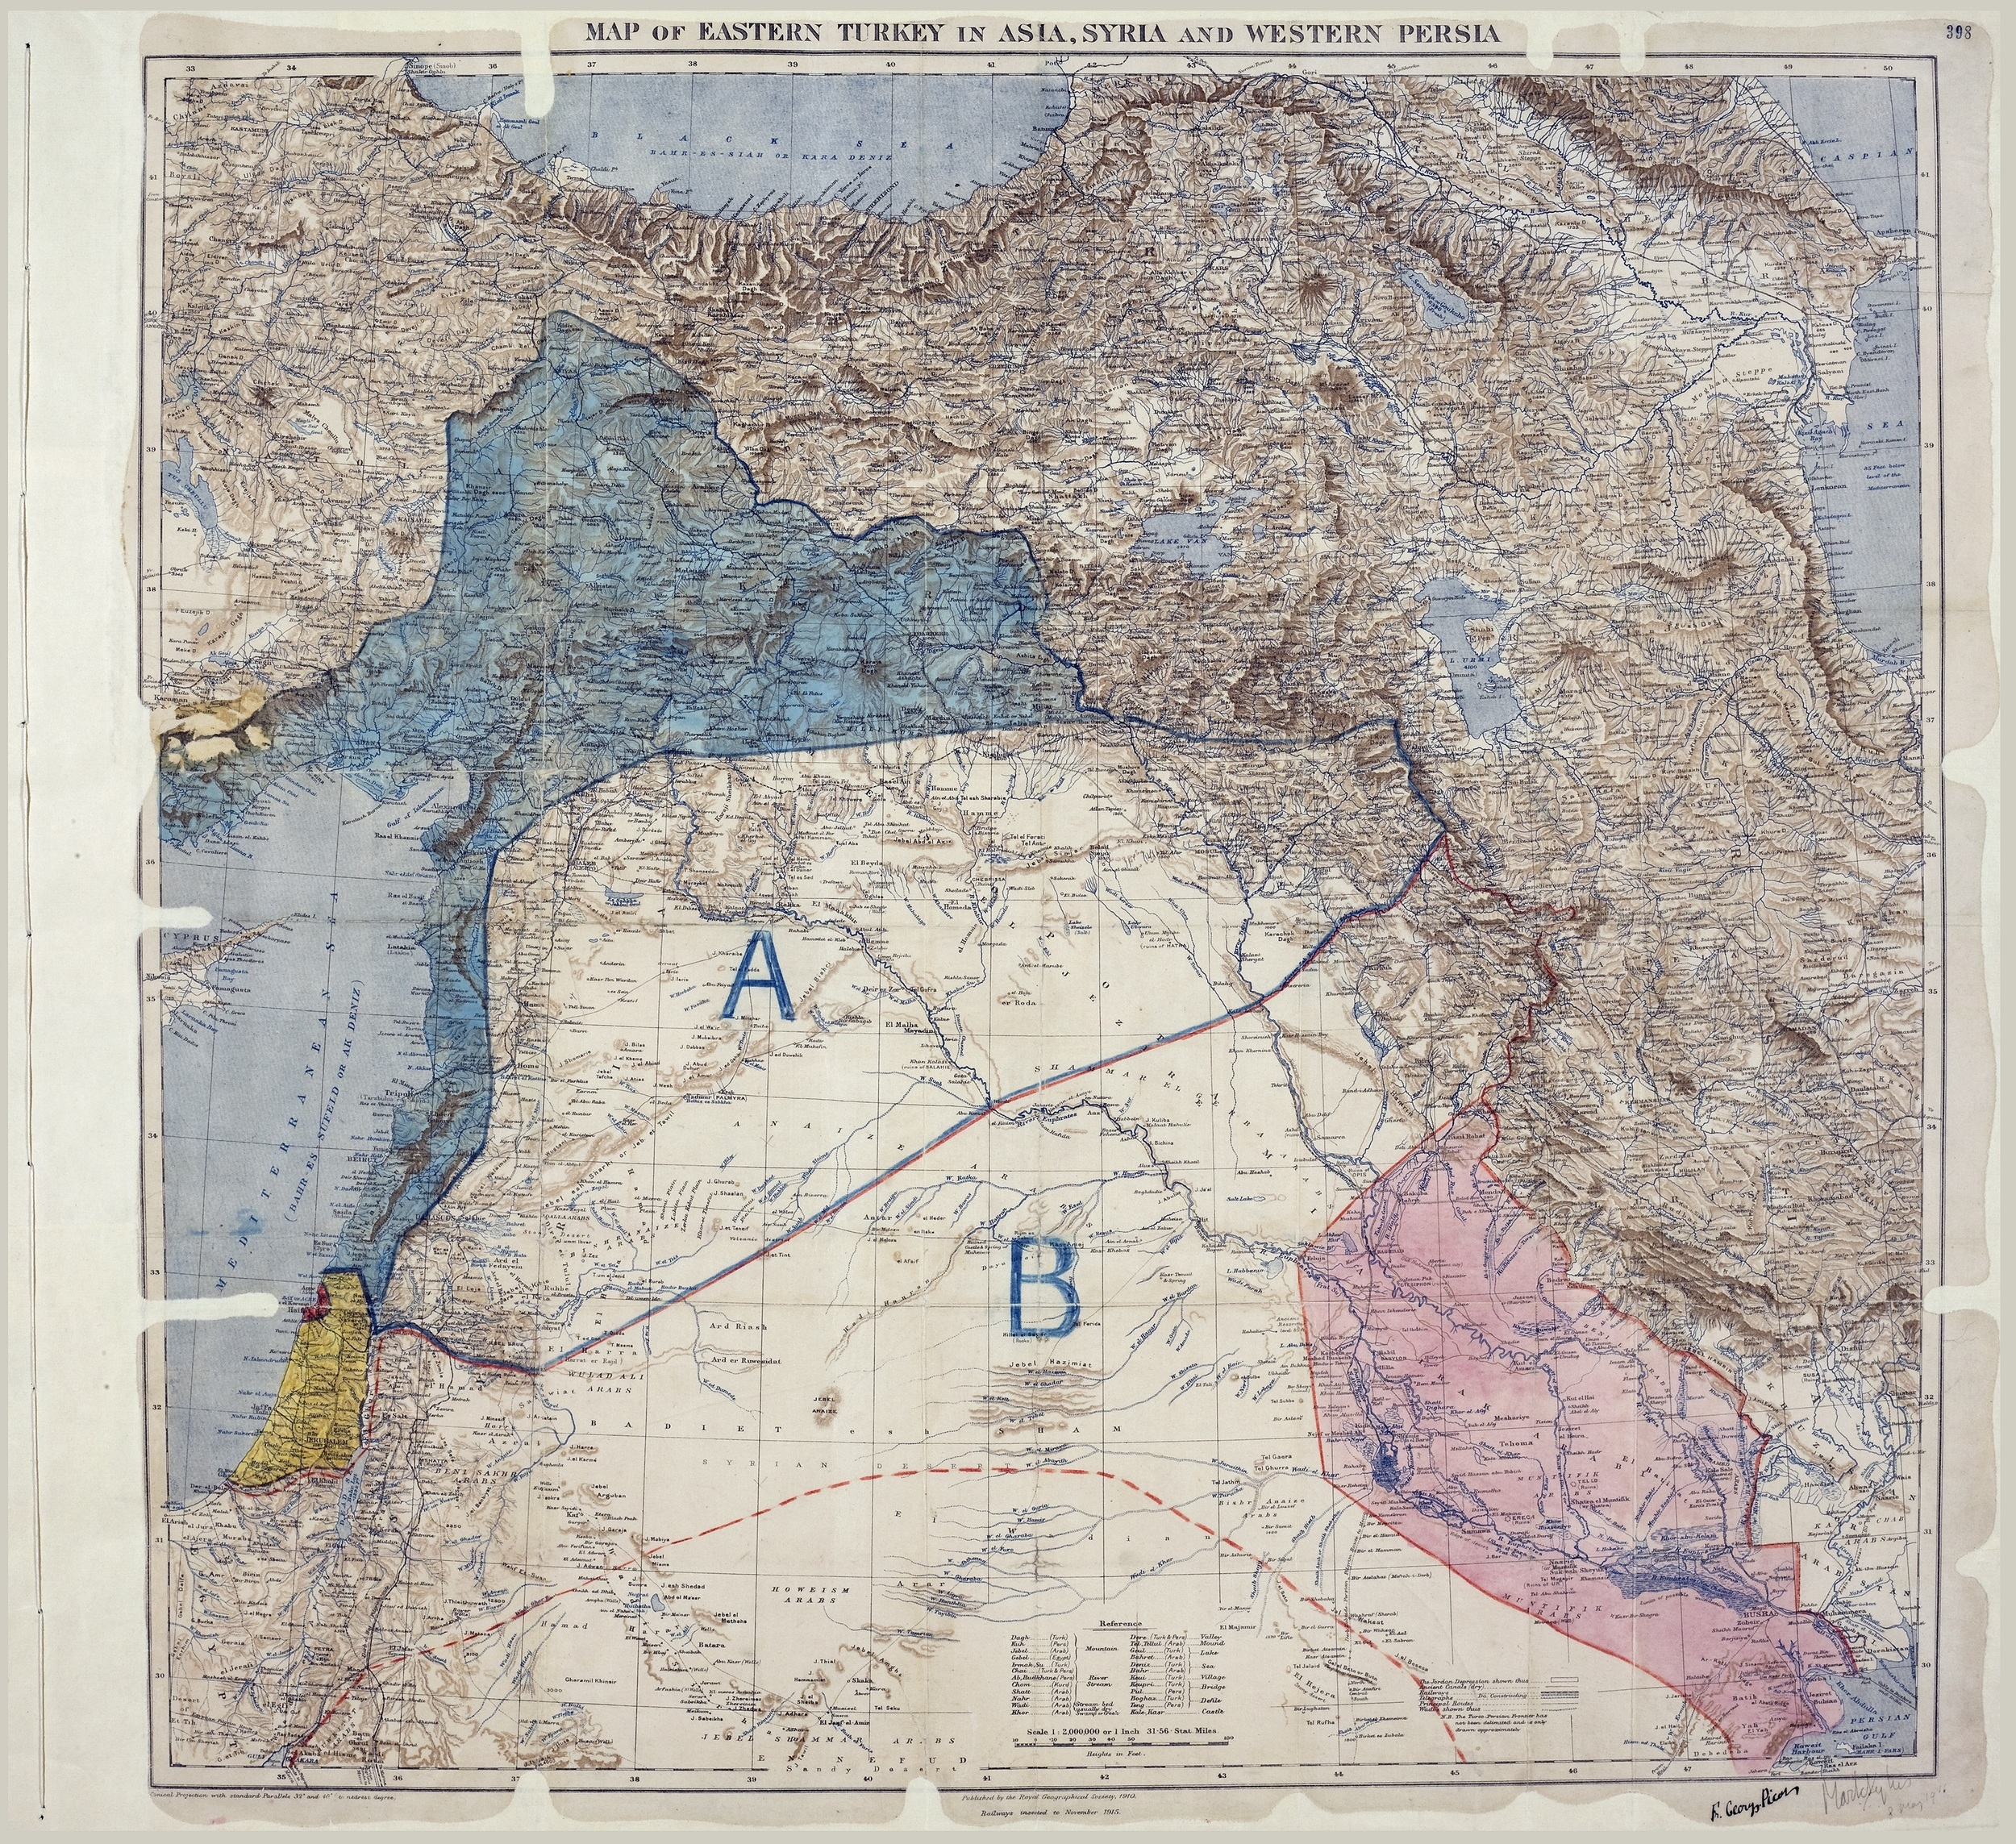 Map of  Sykes–Picot Agreement  showing Eastern Turkey in Asia, Syria and Western Persia, and areas of control and influence agreed between the  British  and the French.  Royal Geographical Society , 1910-15. Signed by  Mark Sykes  and  François Georges-Picot , 8 May 1916. | Image via  Wikimedia Commons .